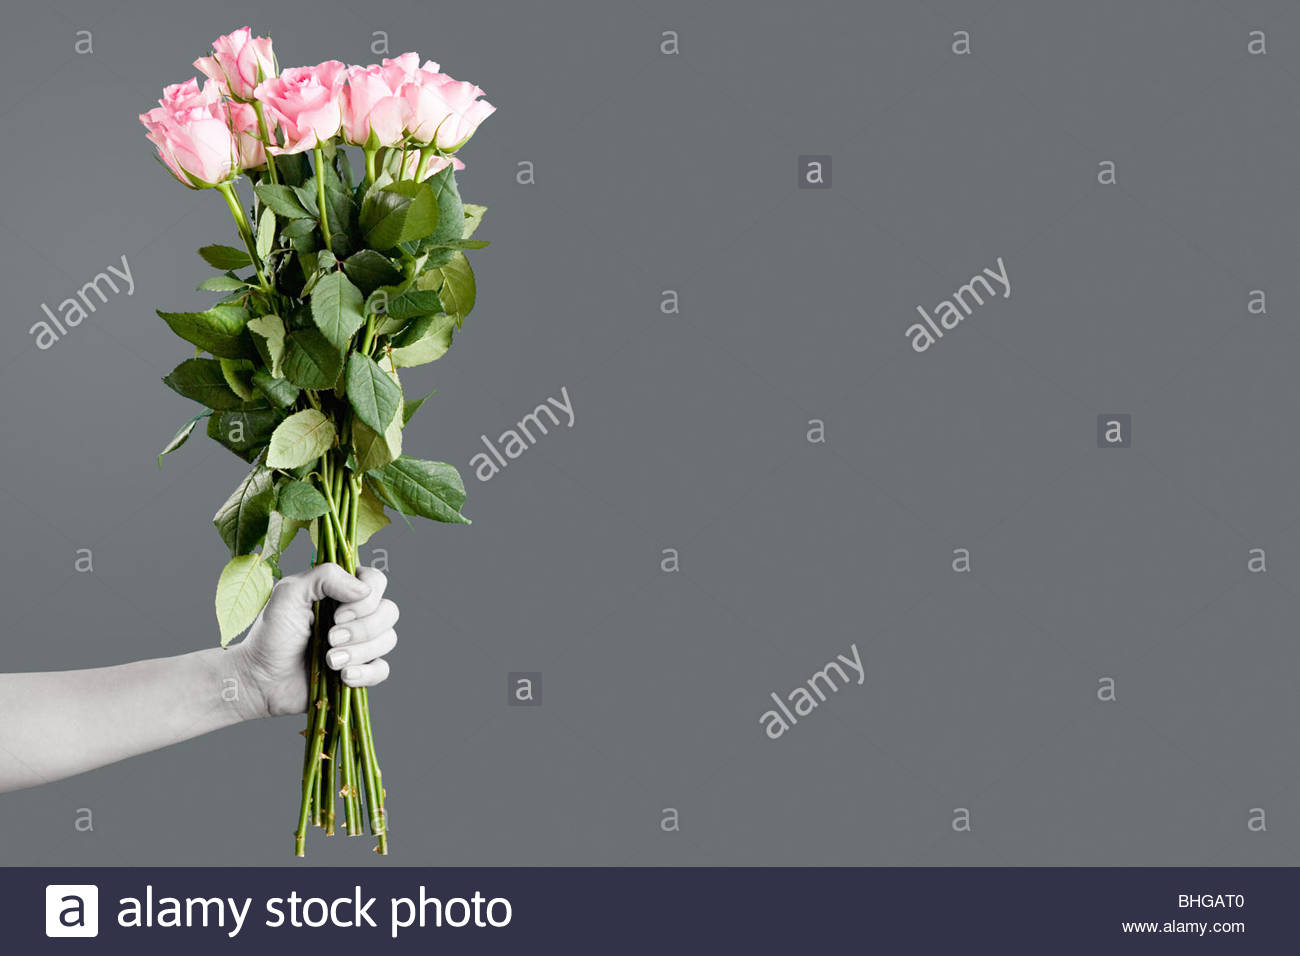 Person holding bunch of roses - Stock Image